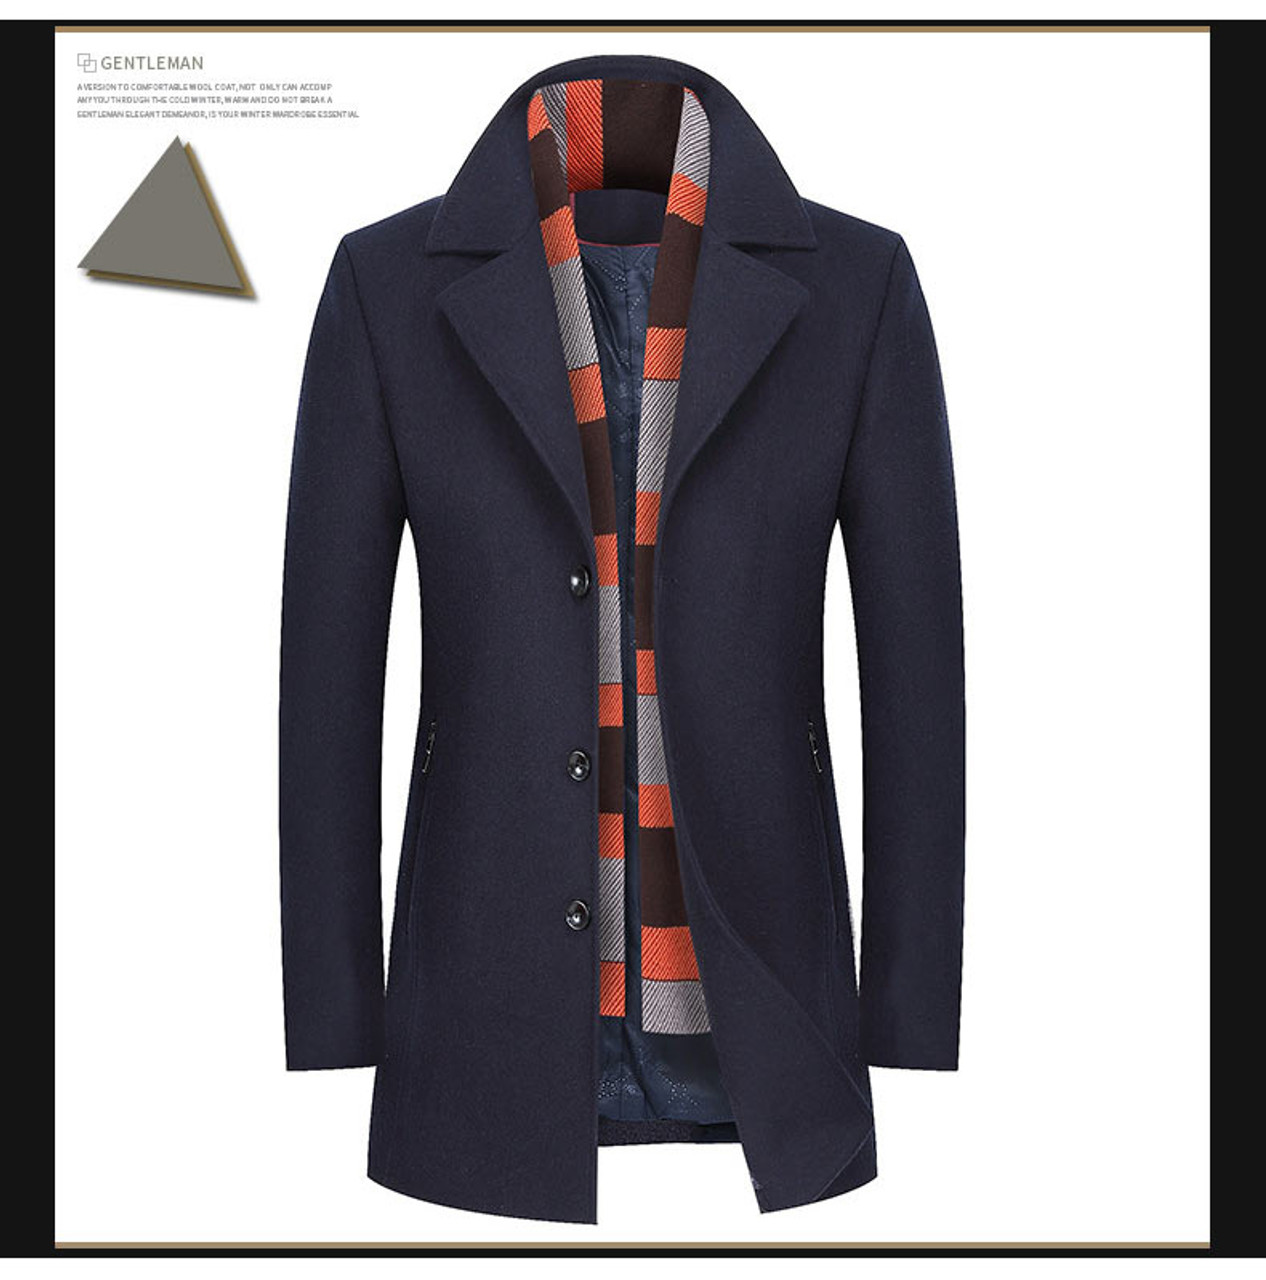 6a68e431df15 ... Mwxsd brand winter men's wool jackets men slim fit scarf collar Wool  & Blends male ...